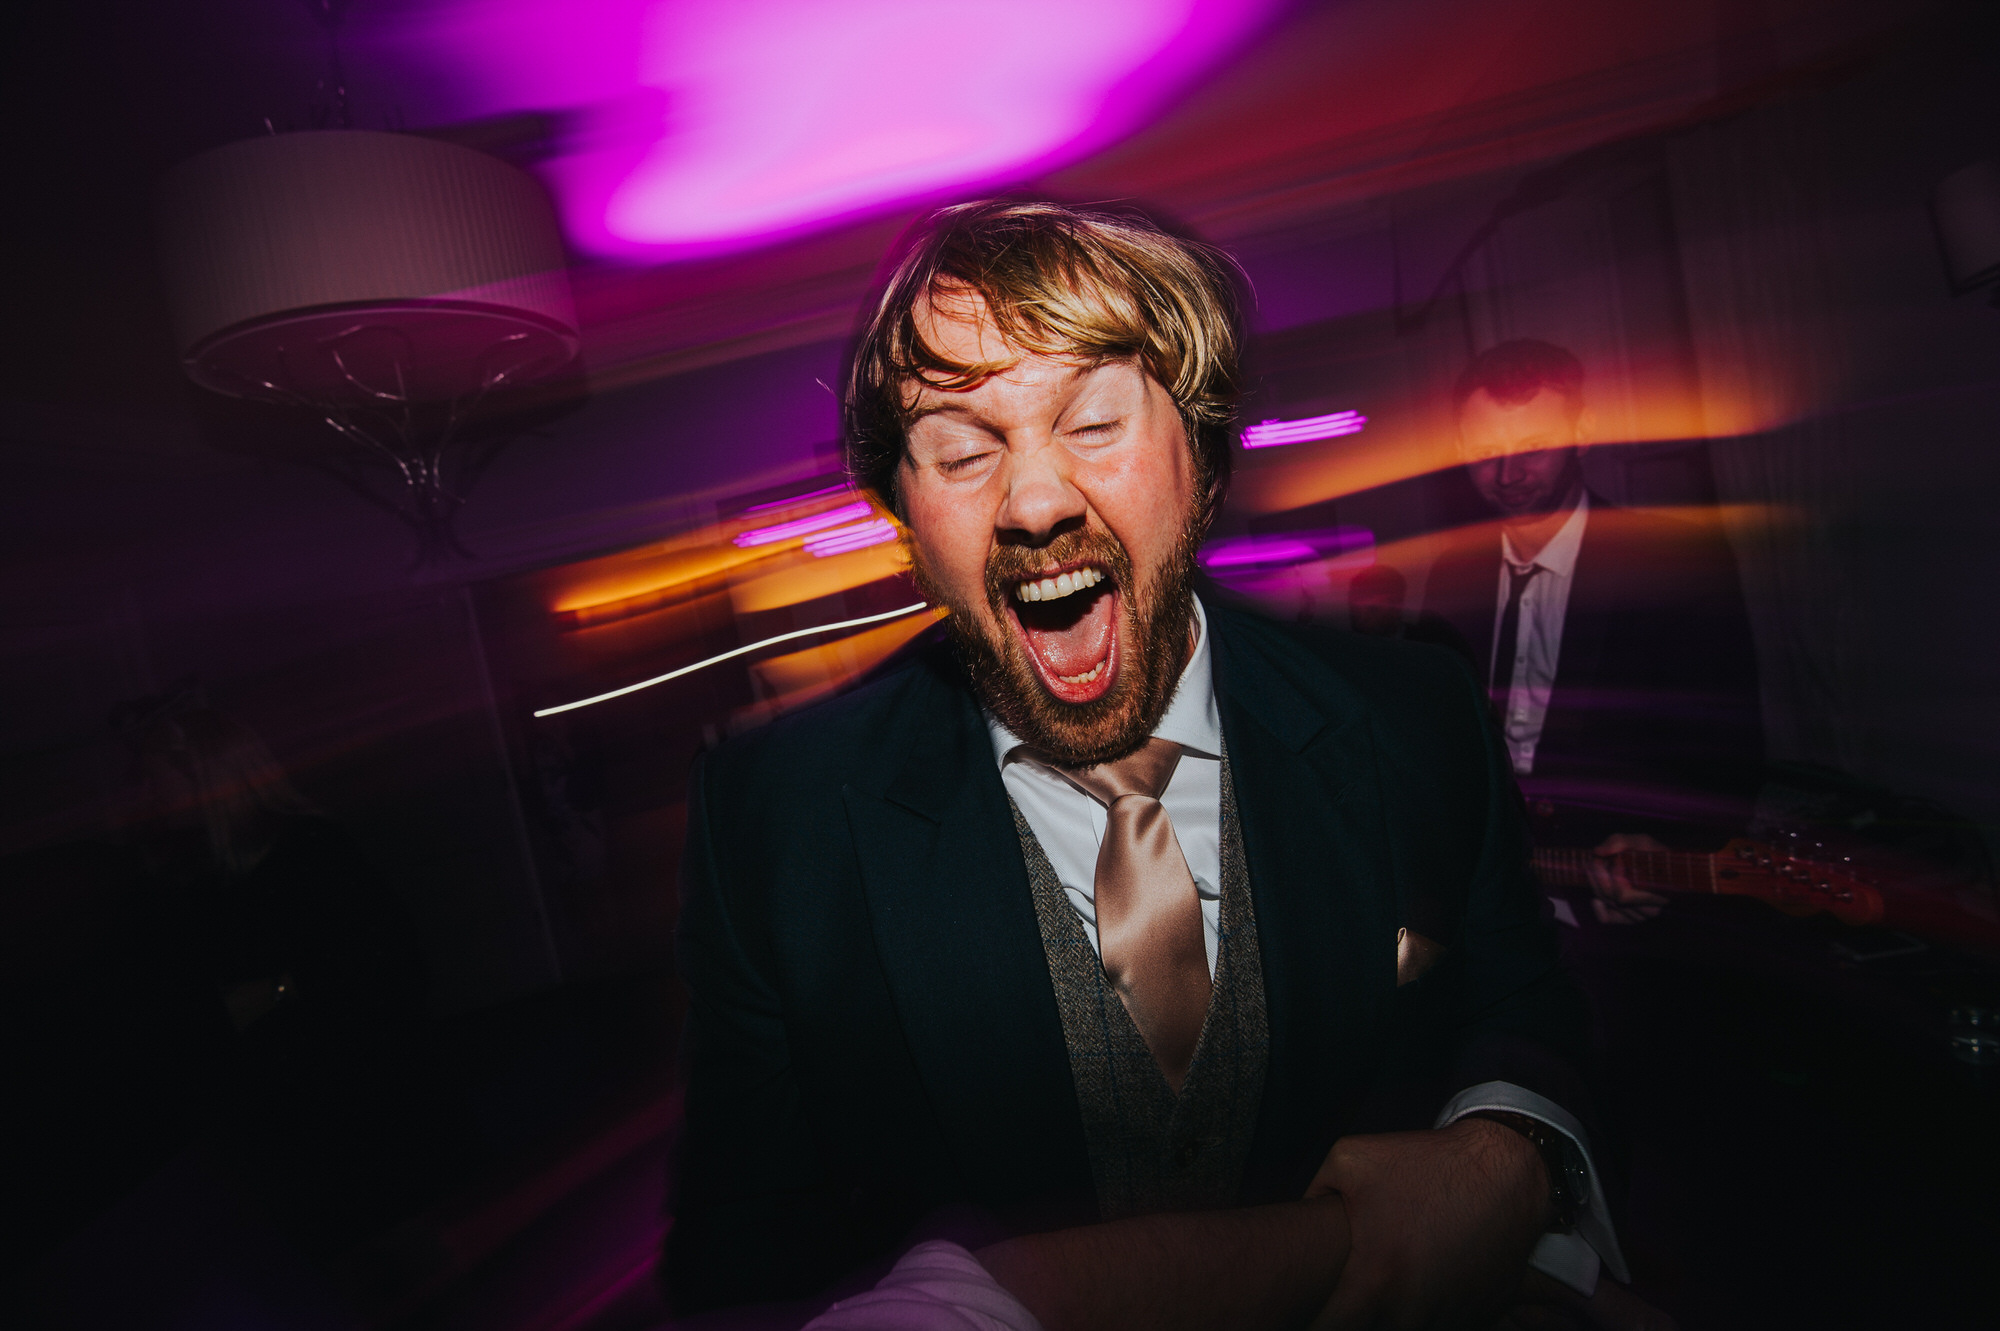 Best uk wedding photographer 2018 148